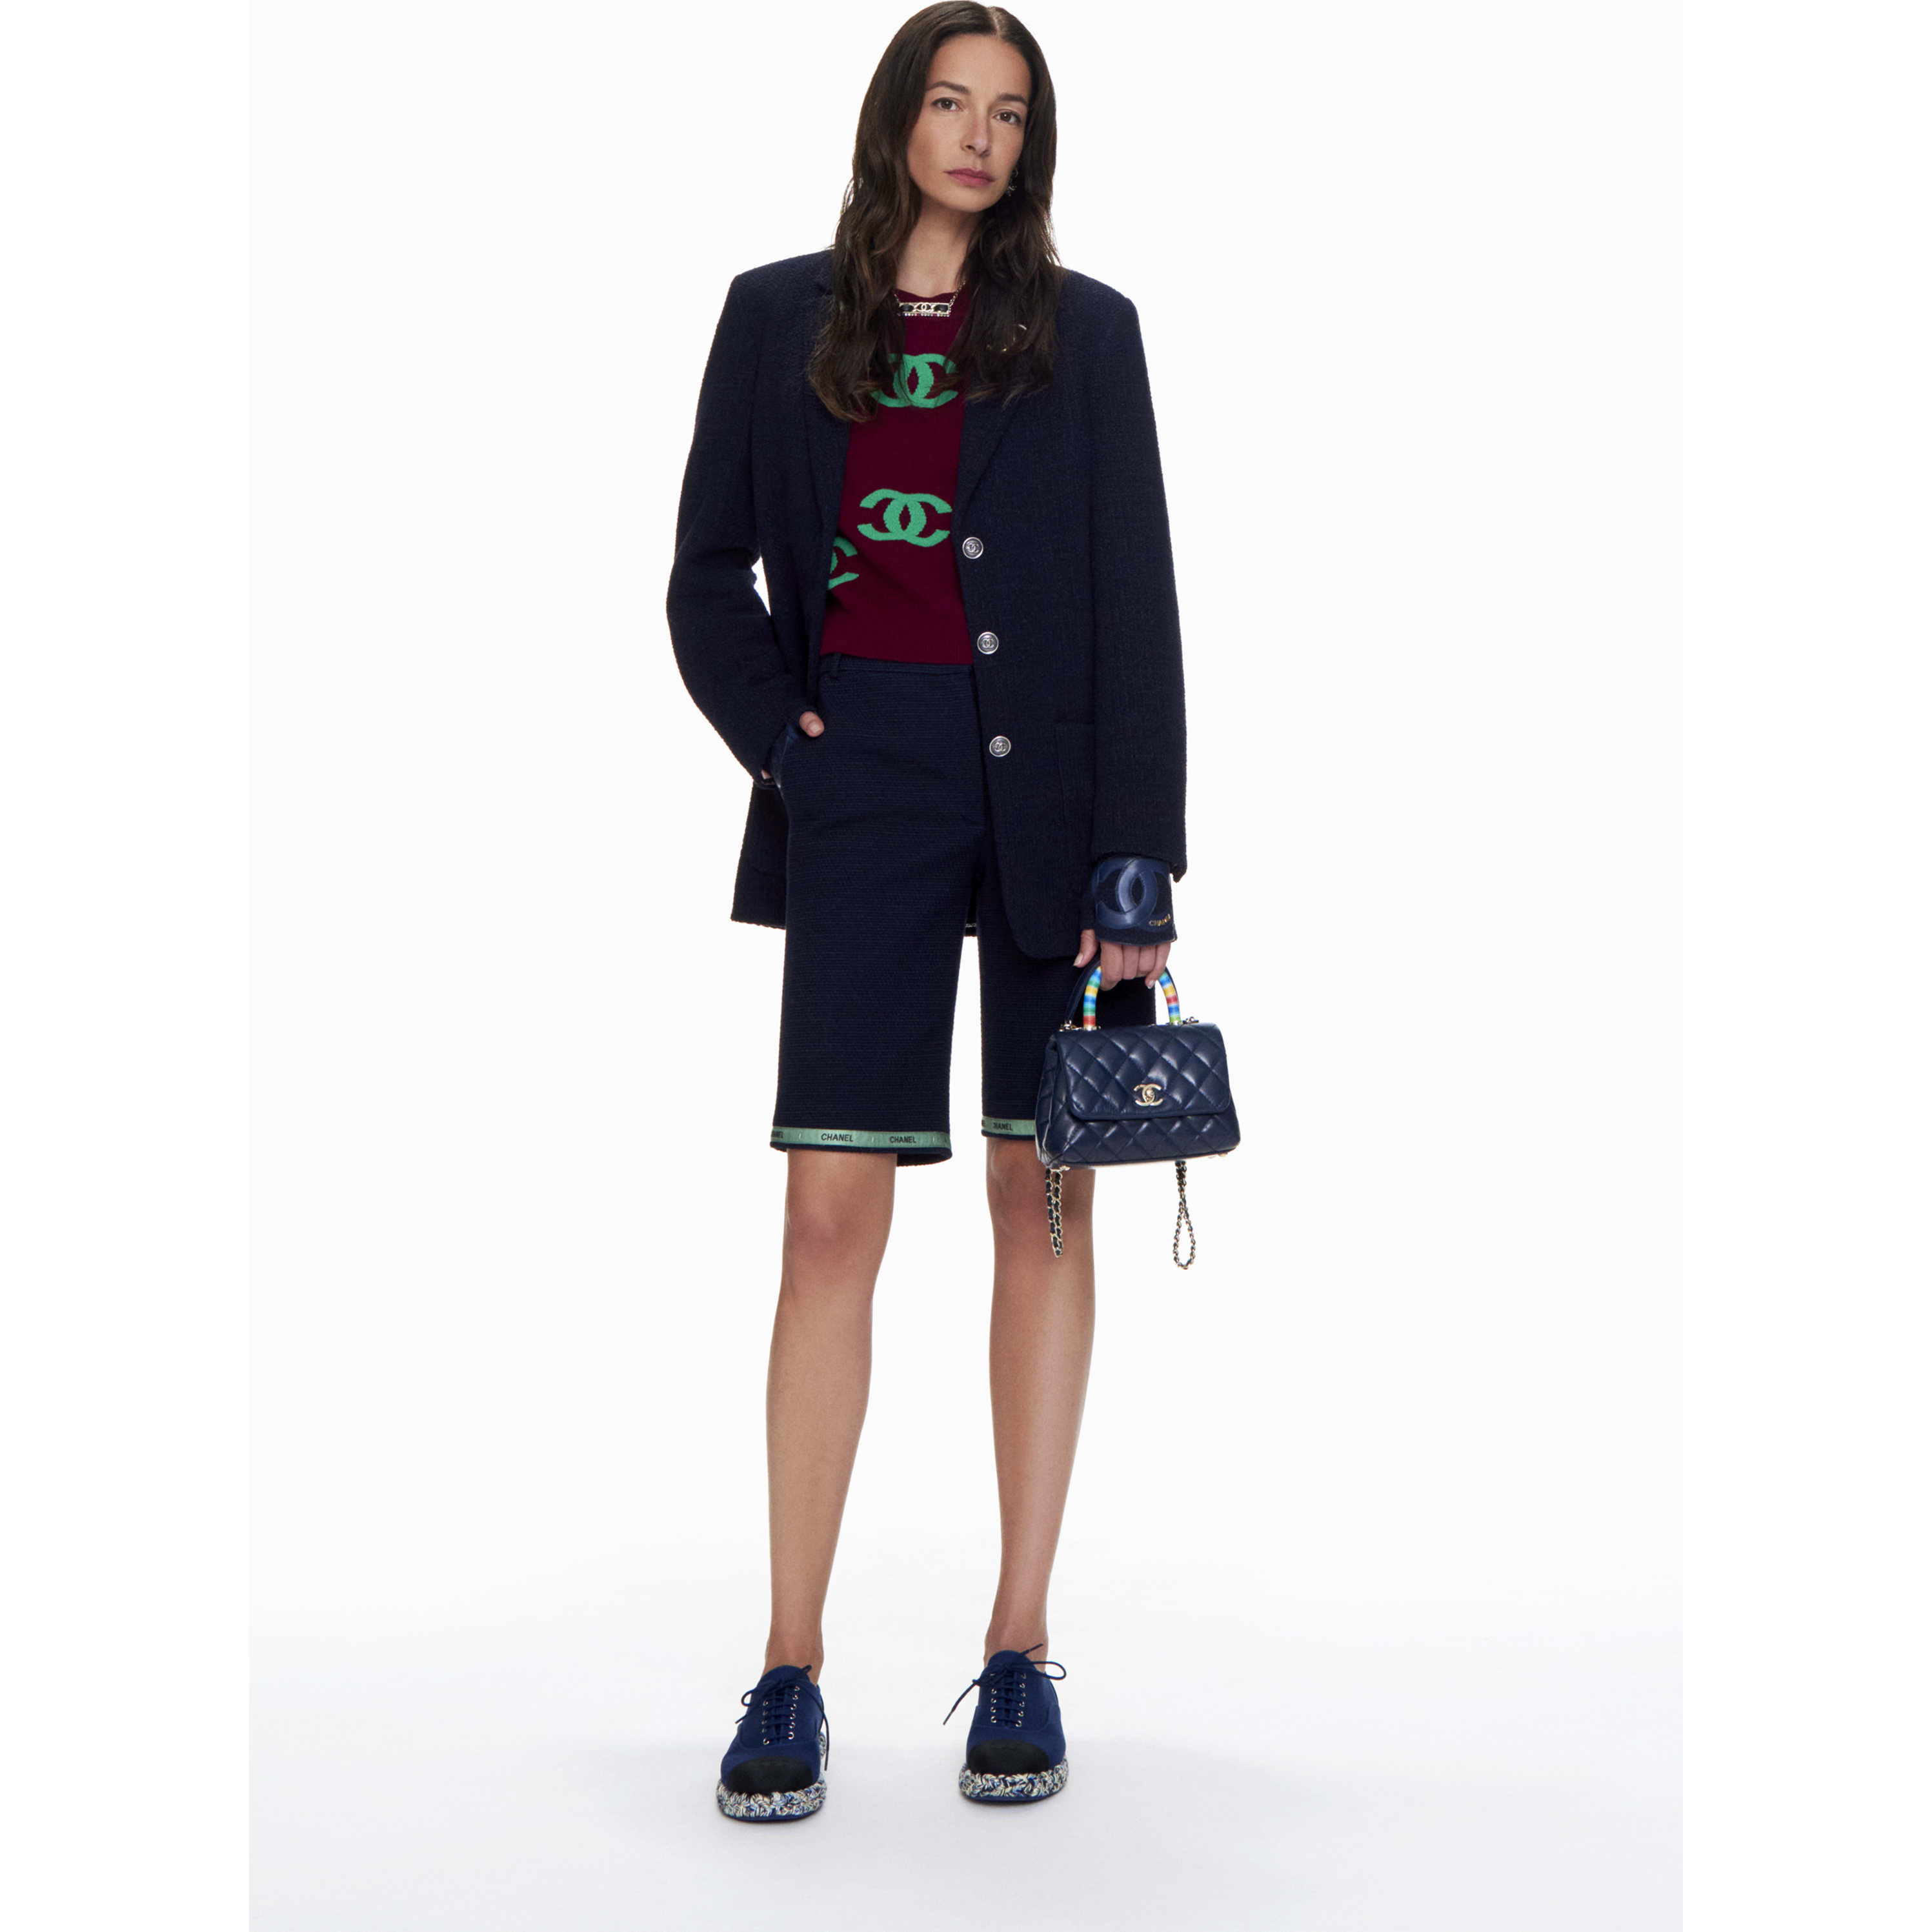 Bermuda Shorts - Navy Blue & Green - Cotton Tweed - CHANEL - Default view - see standard sized version